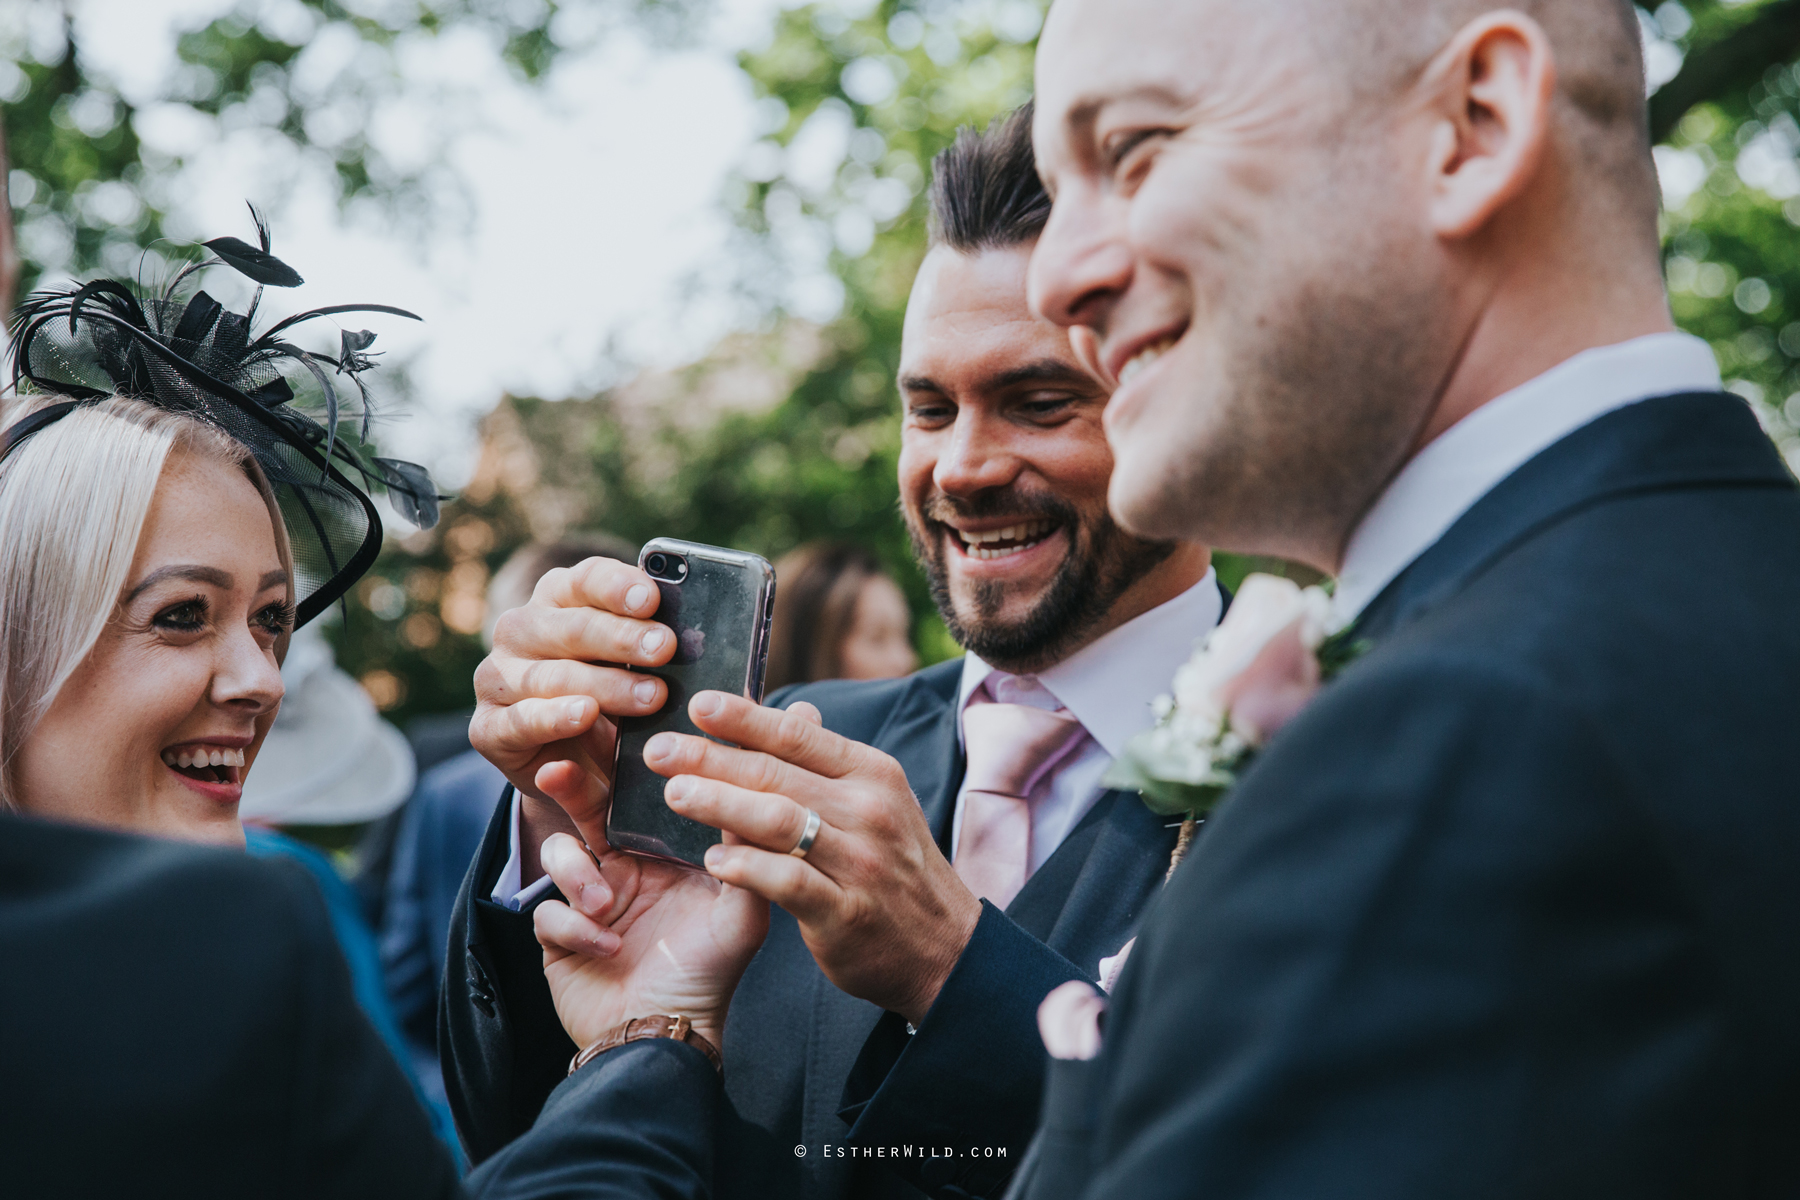 Wootton_Wedding_Copyright_Esther_Wild_Photographer_IMG_1342.jpg